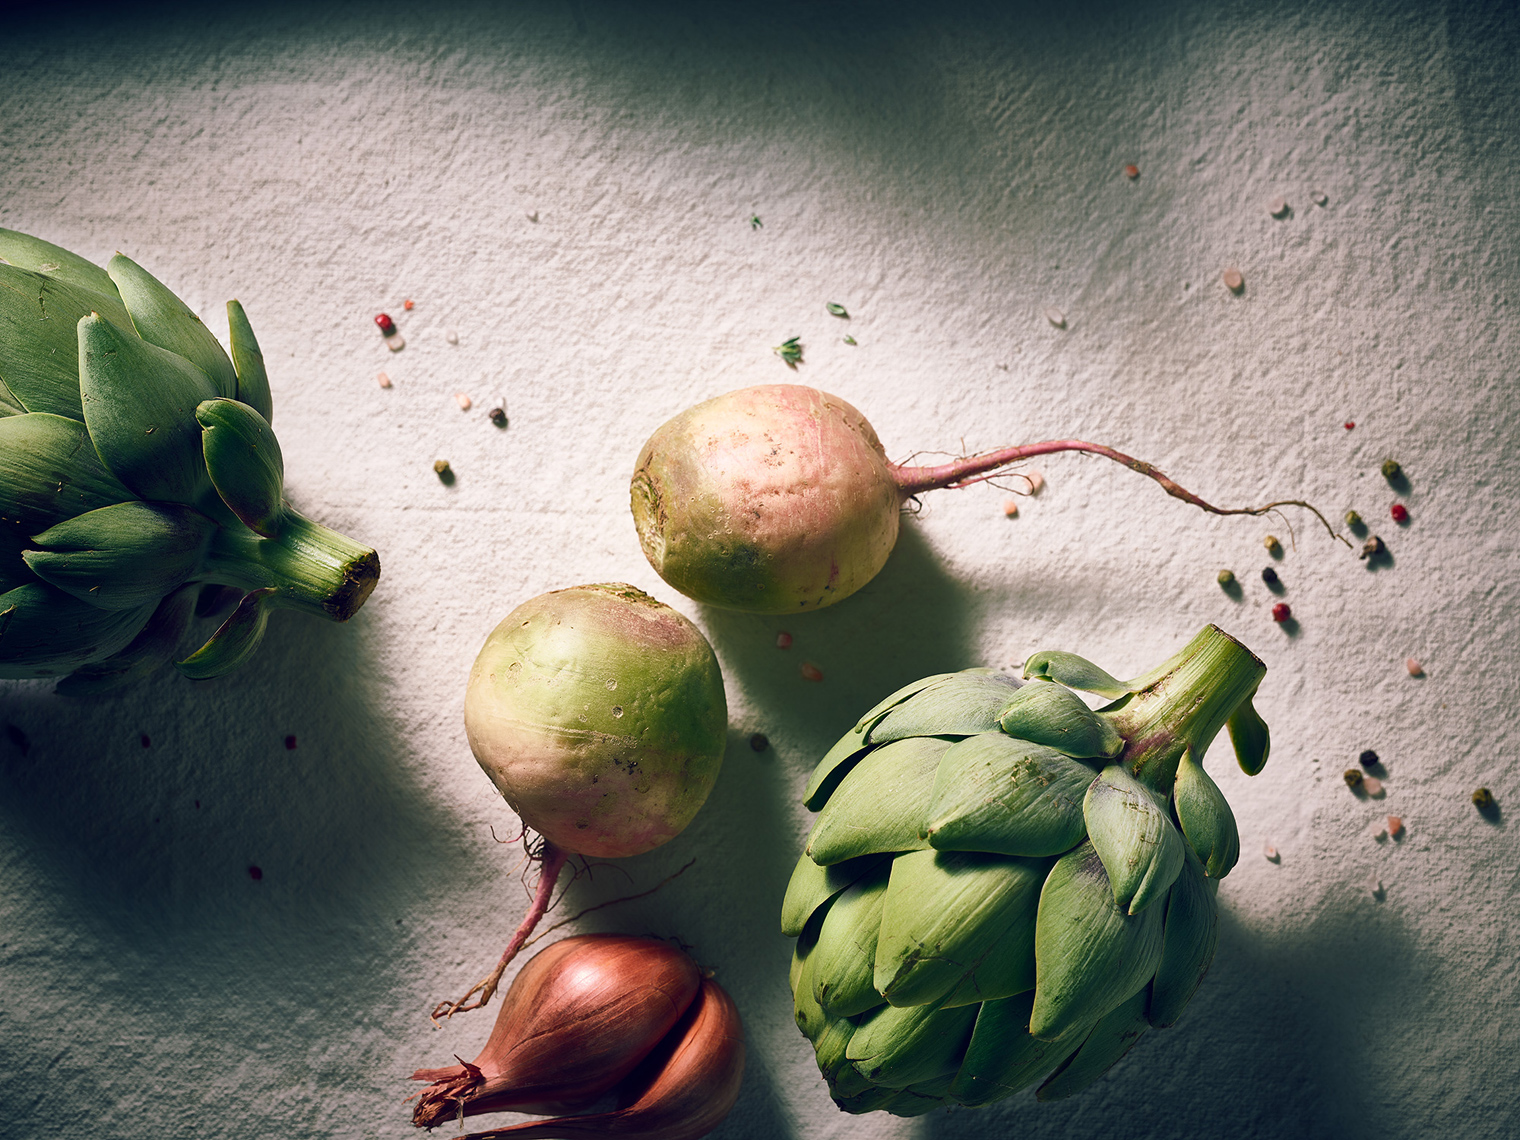 Artichokes and Radishes -Food Photography- © Aristo Studios